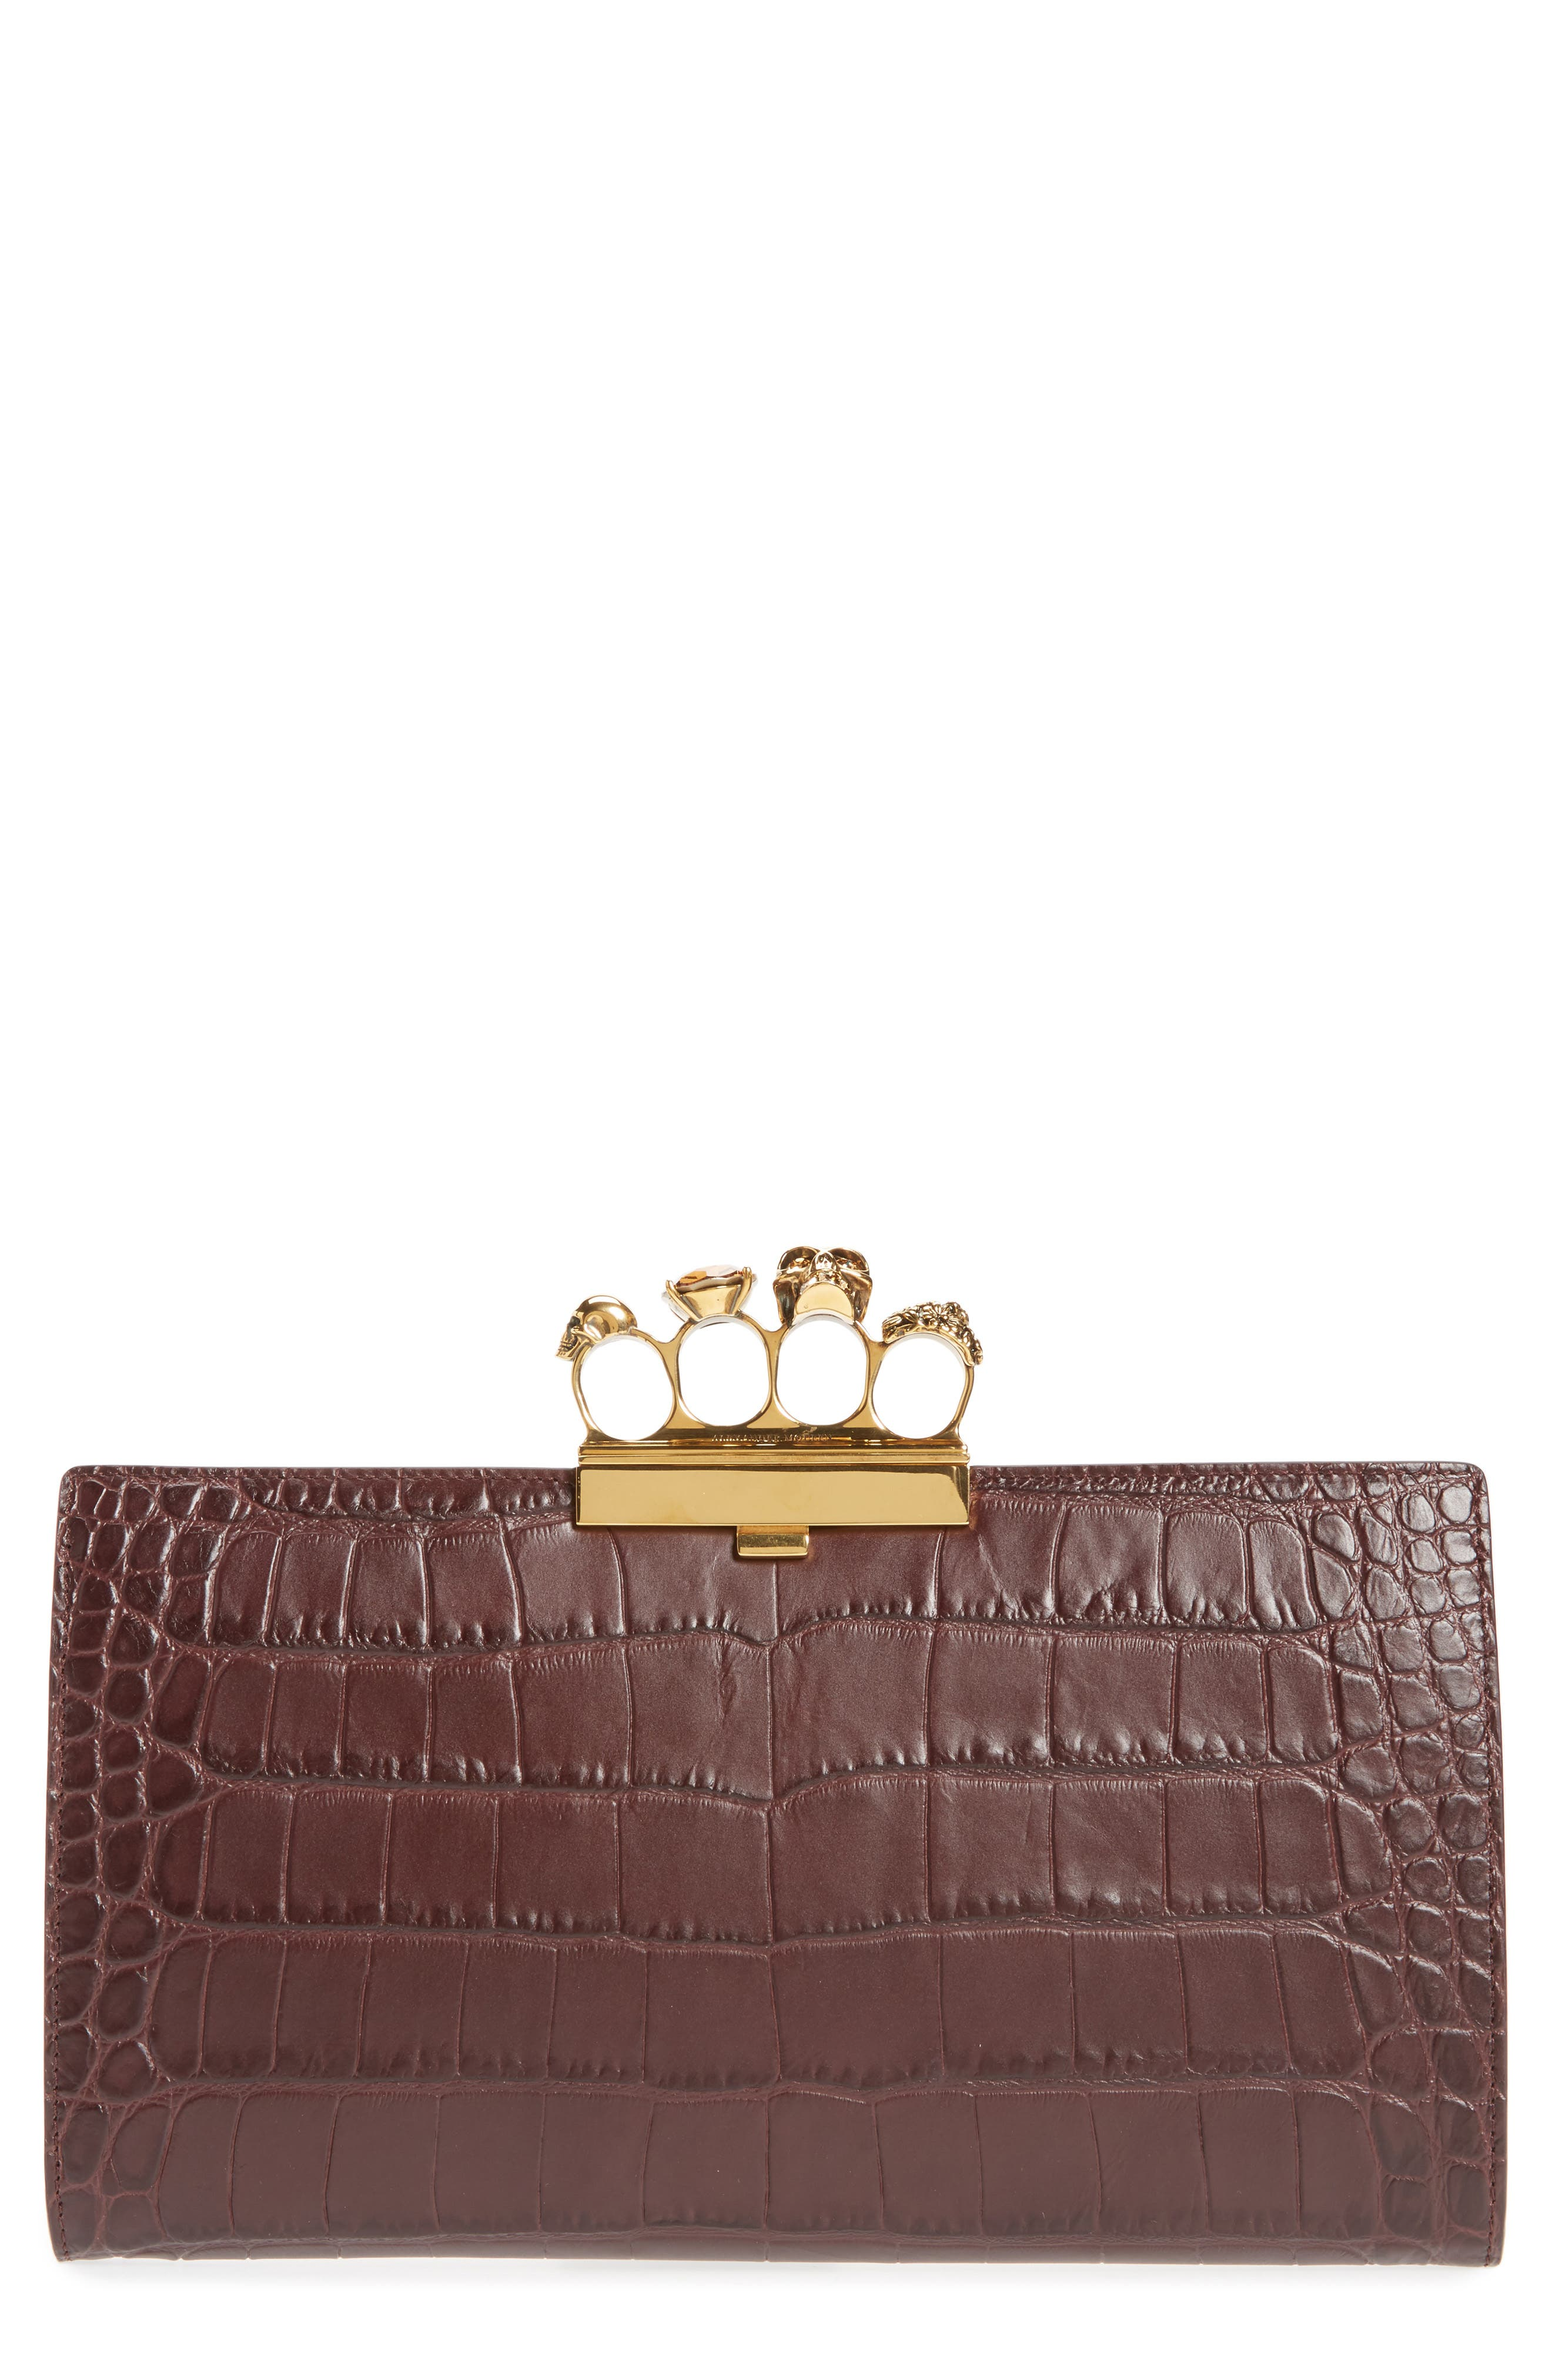 Croc Embossed Leather Knuckle Clutch,                             Main thumbnail 1, color,                             Burgundy